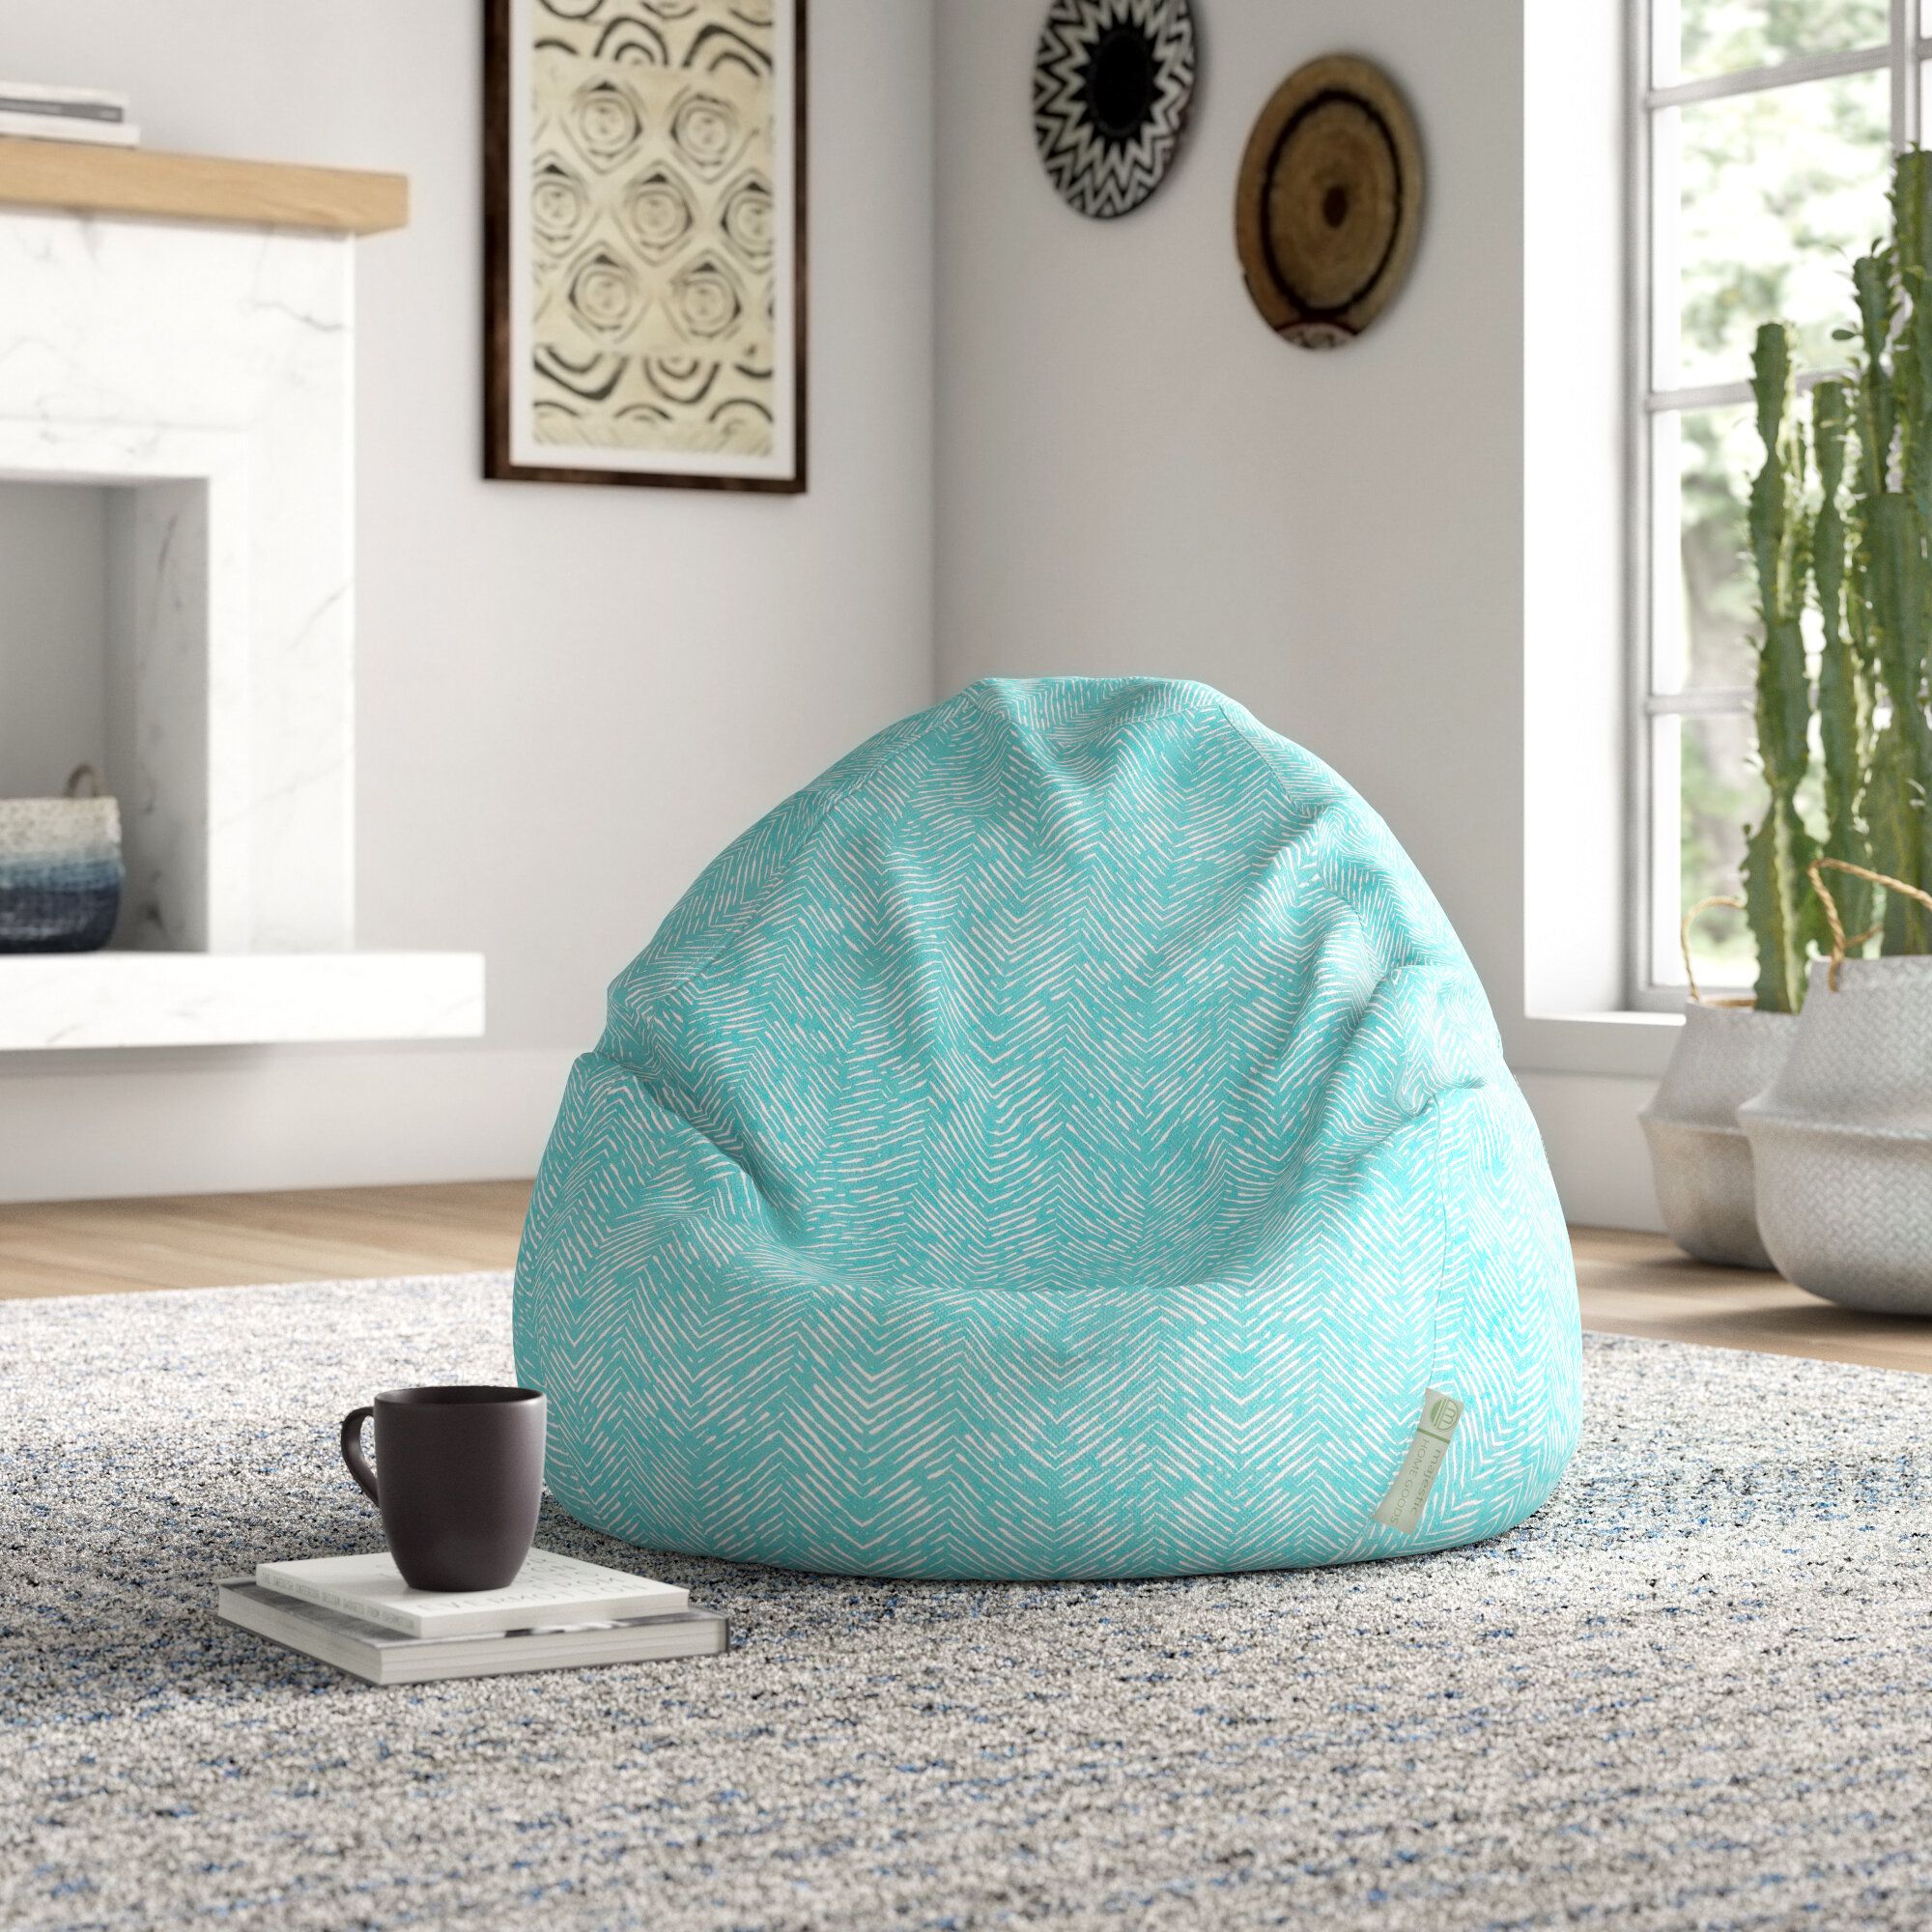 Fabulous Wrought Studio Glassell Bean Bag Chair Reviews Wayfair Alphanode Cool Chair Designs And Ideas Alphanodeonline